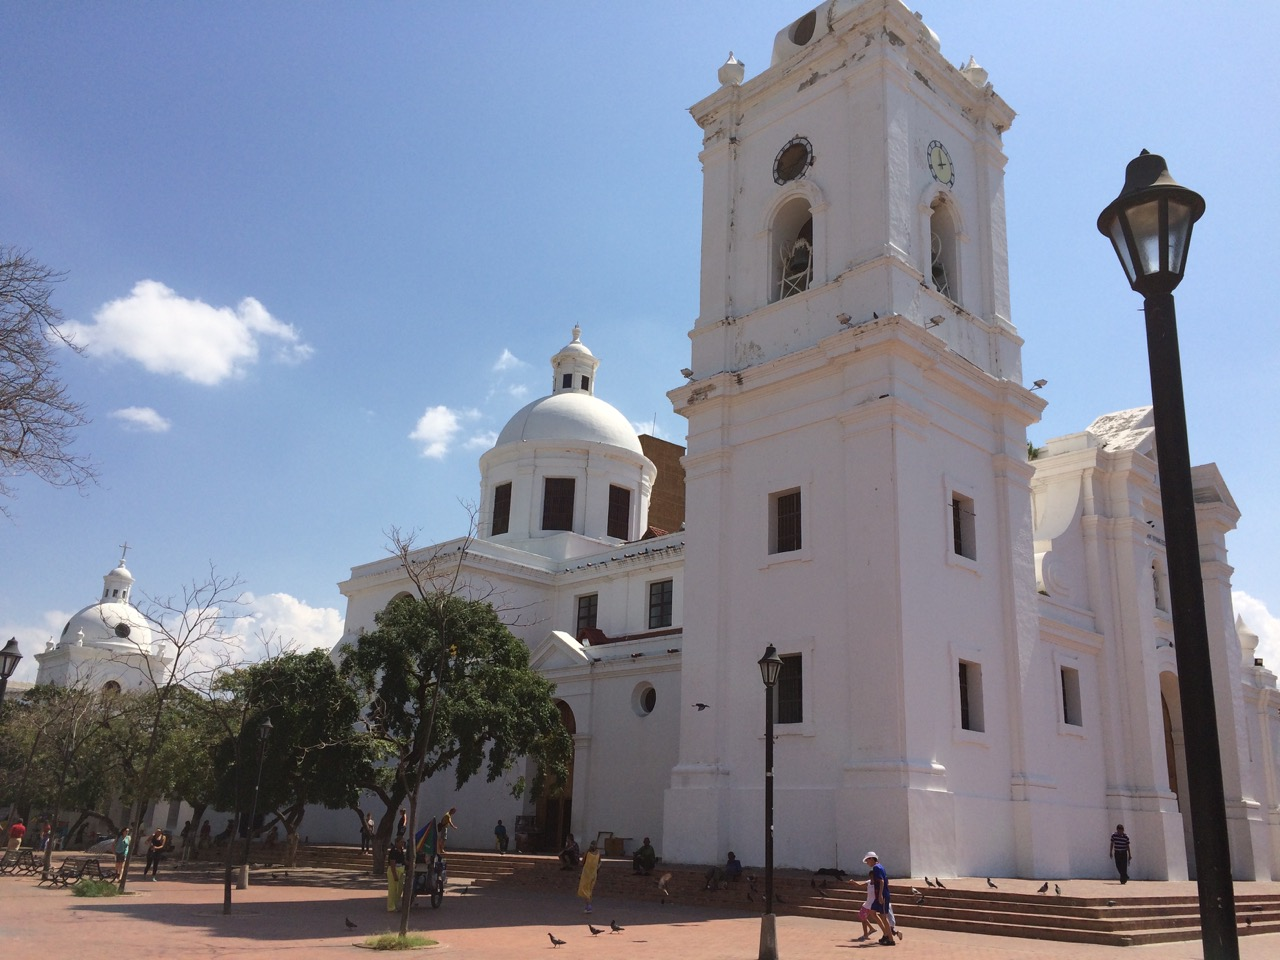 Catedral de Santa Marta built in 1765